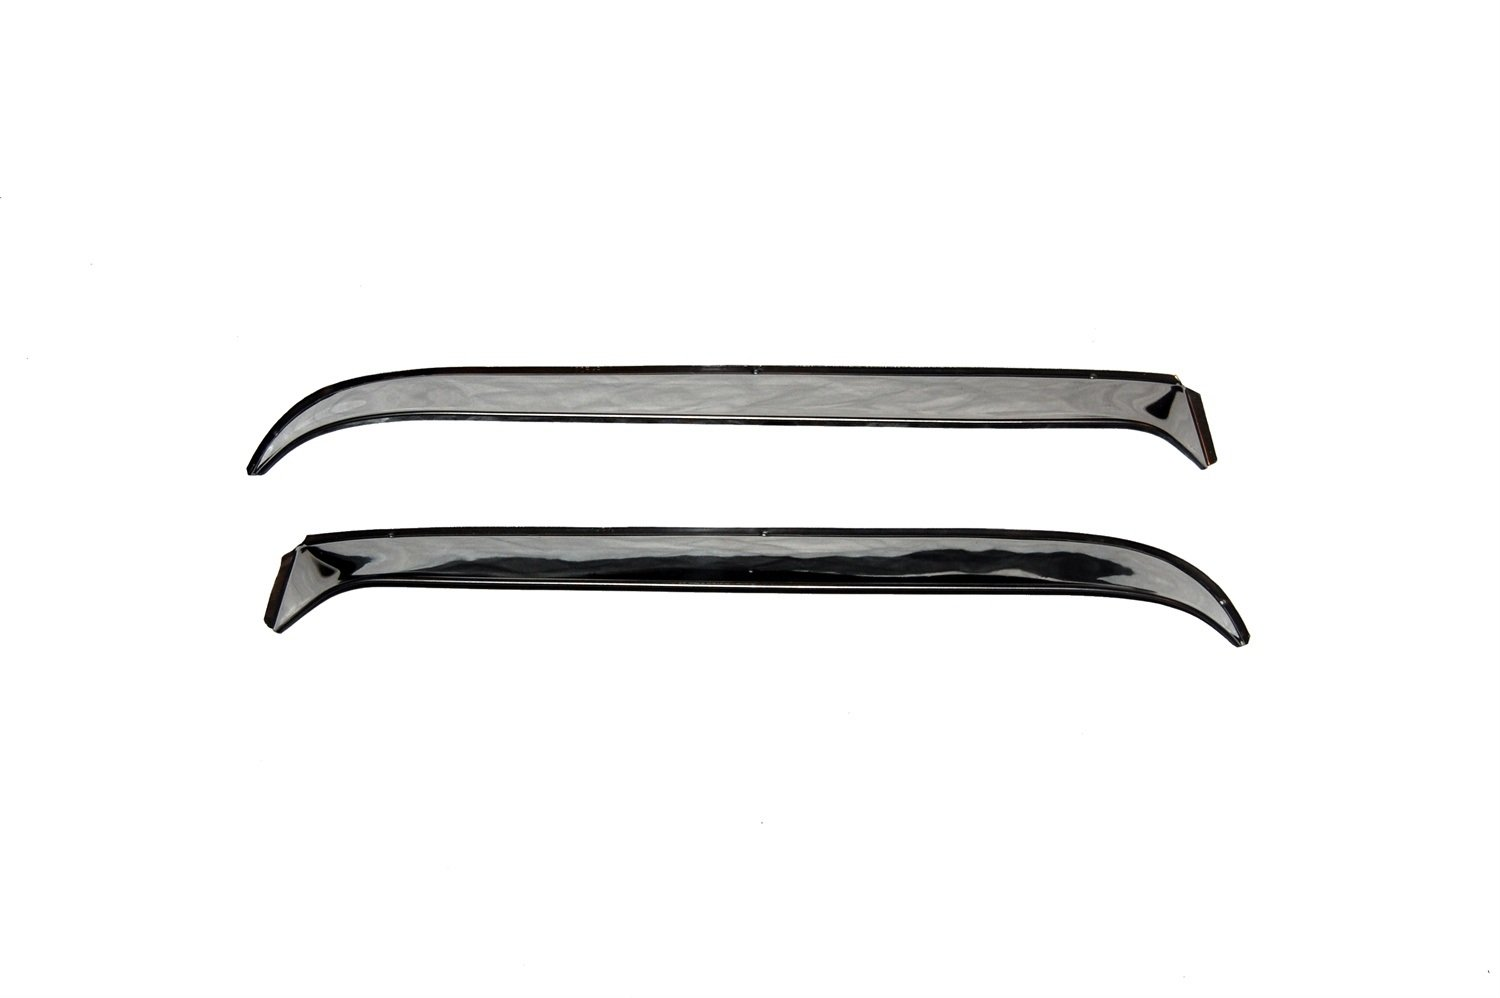 Auto Ventshade 12031 Ventshade with Stainless Steel Finish Consult application guide to verify fitment Also fits 1976-1993 Ramcharger 2-Piece Set for most 1975-1978 Dodge Full Size Pickups